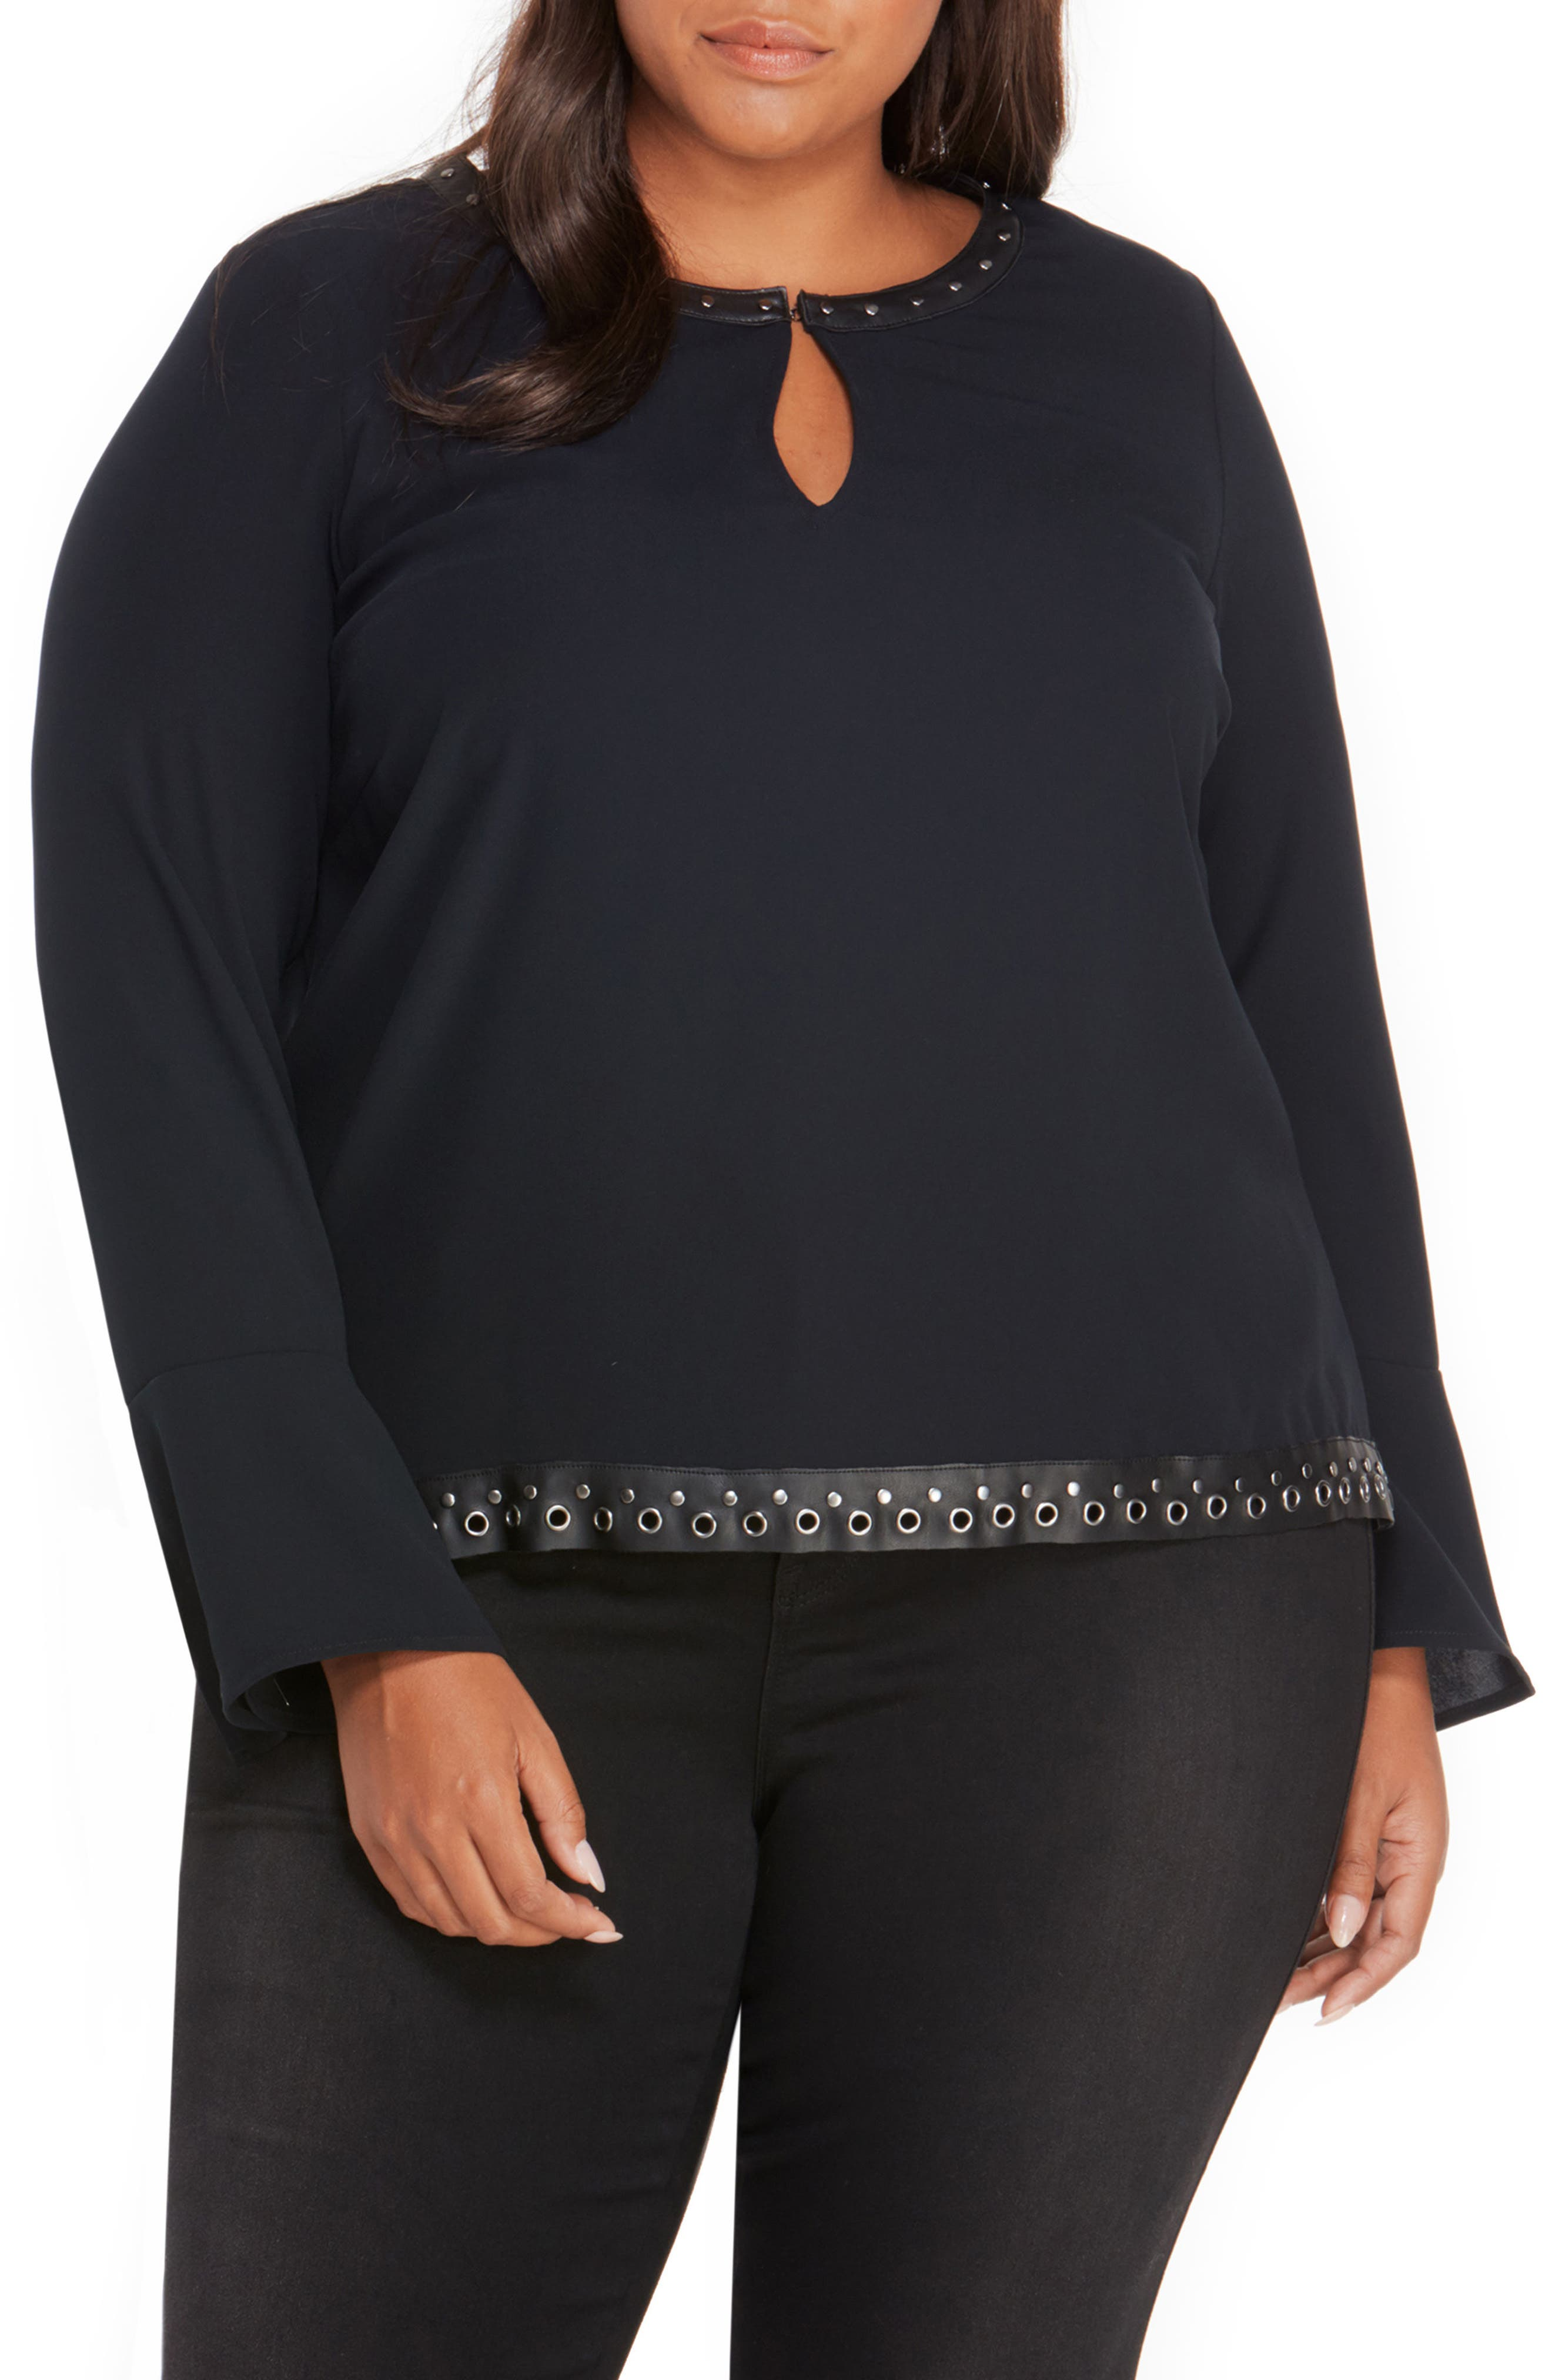 Main Image - Rebel Wilson x Angels Studded Faux Leather Trim Top (Plus Size)